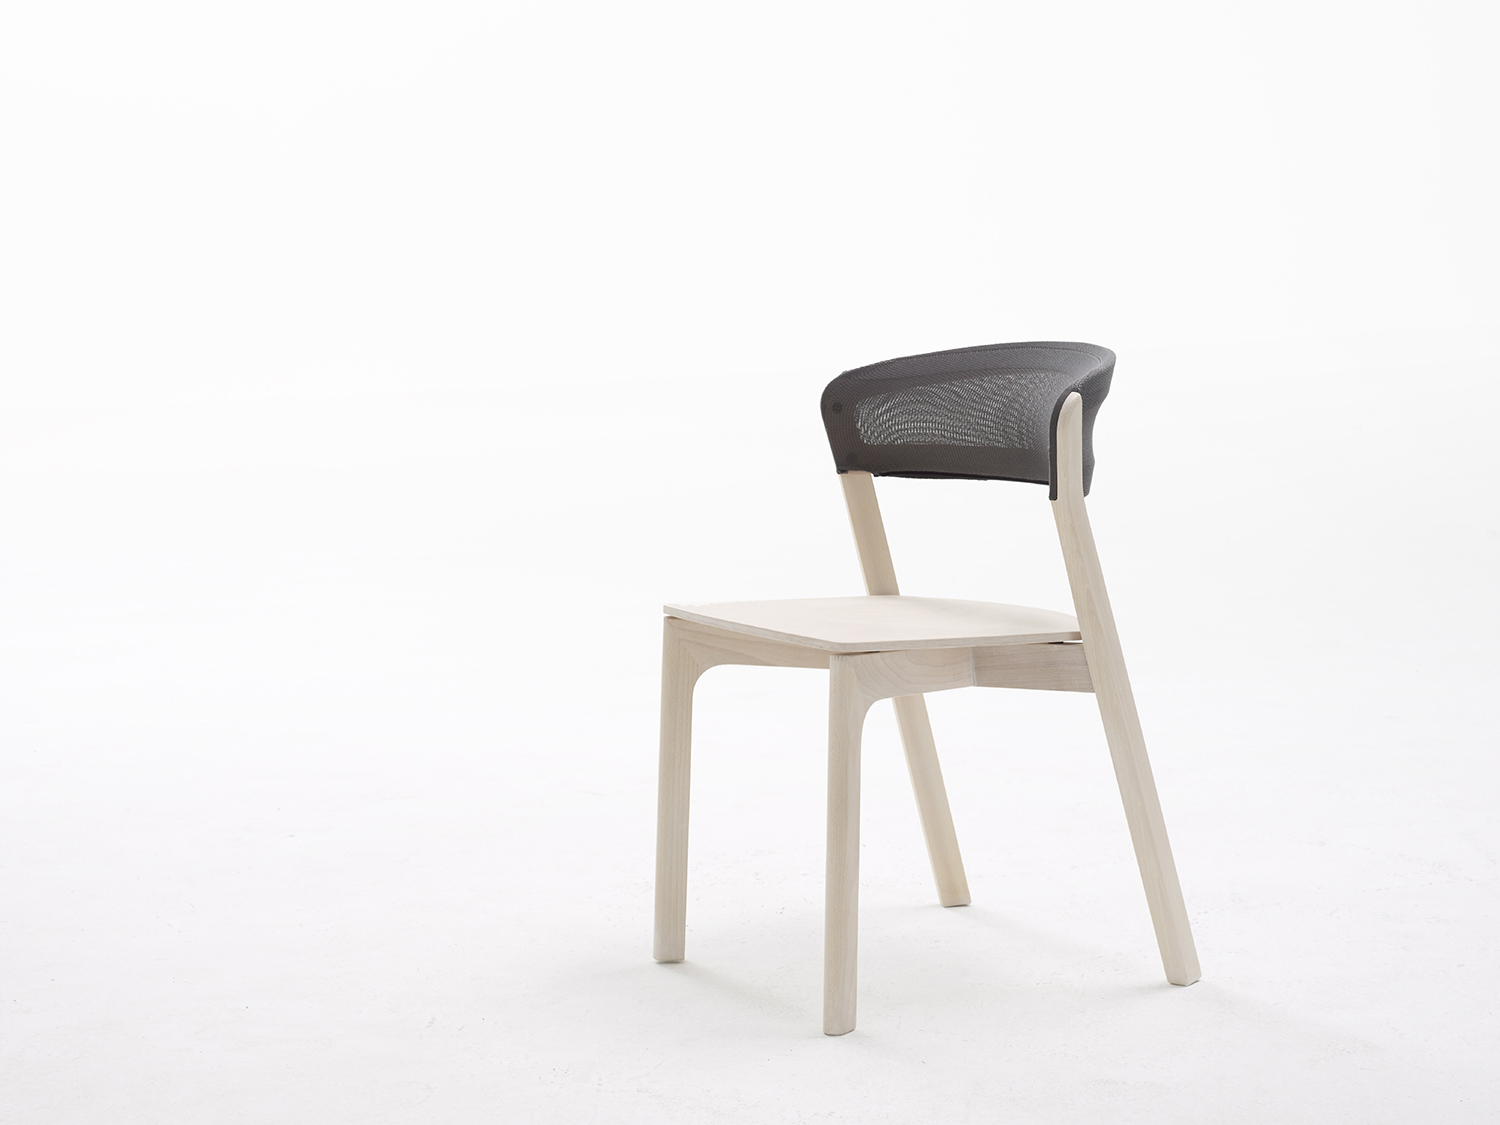 Arco cafe Chair - AD RESIZED - 3.jpg